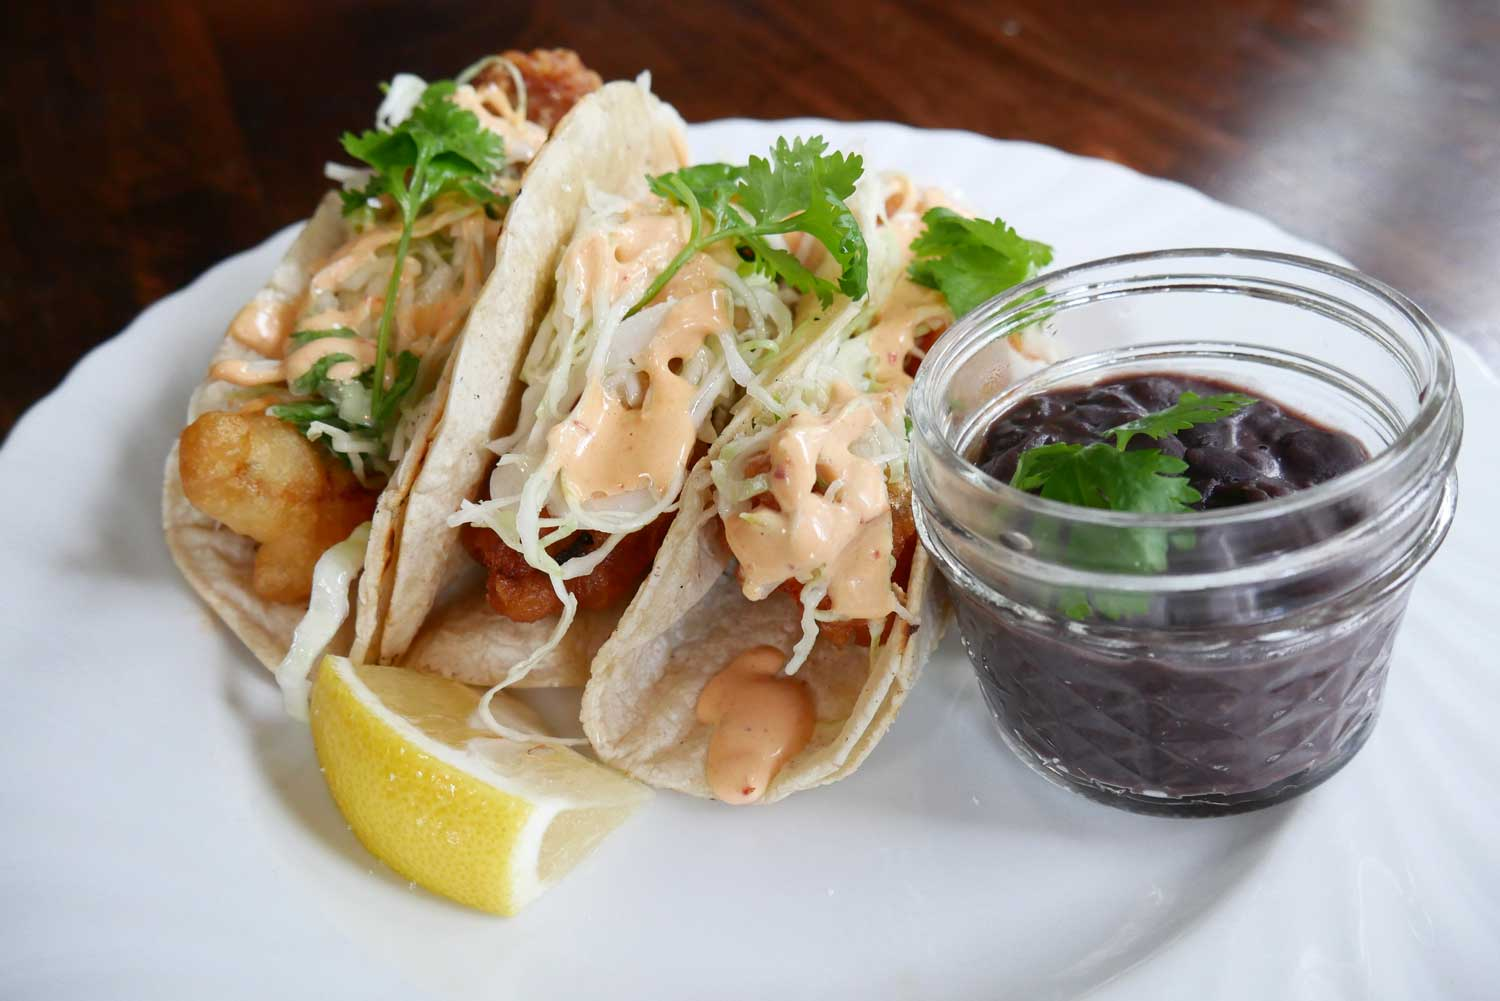 Crispy fish tacos with cilantro slaw and chipotle aioli. Served with a side of black beans